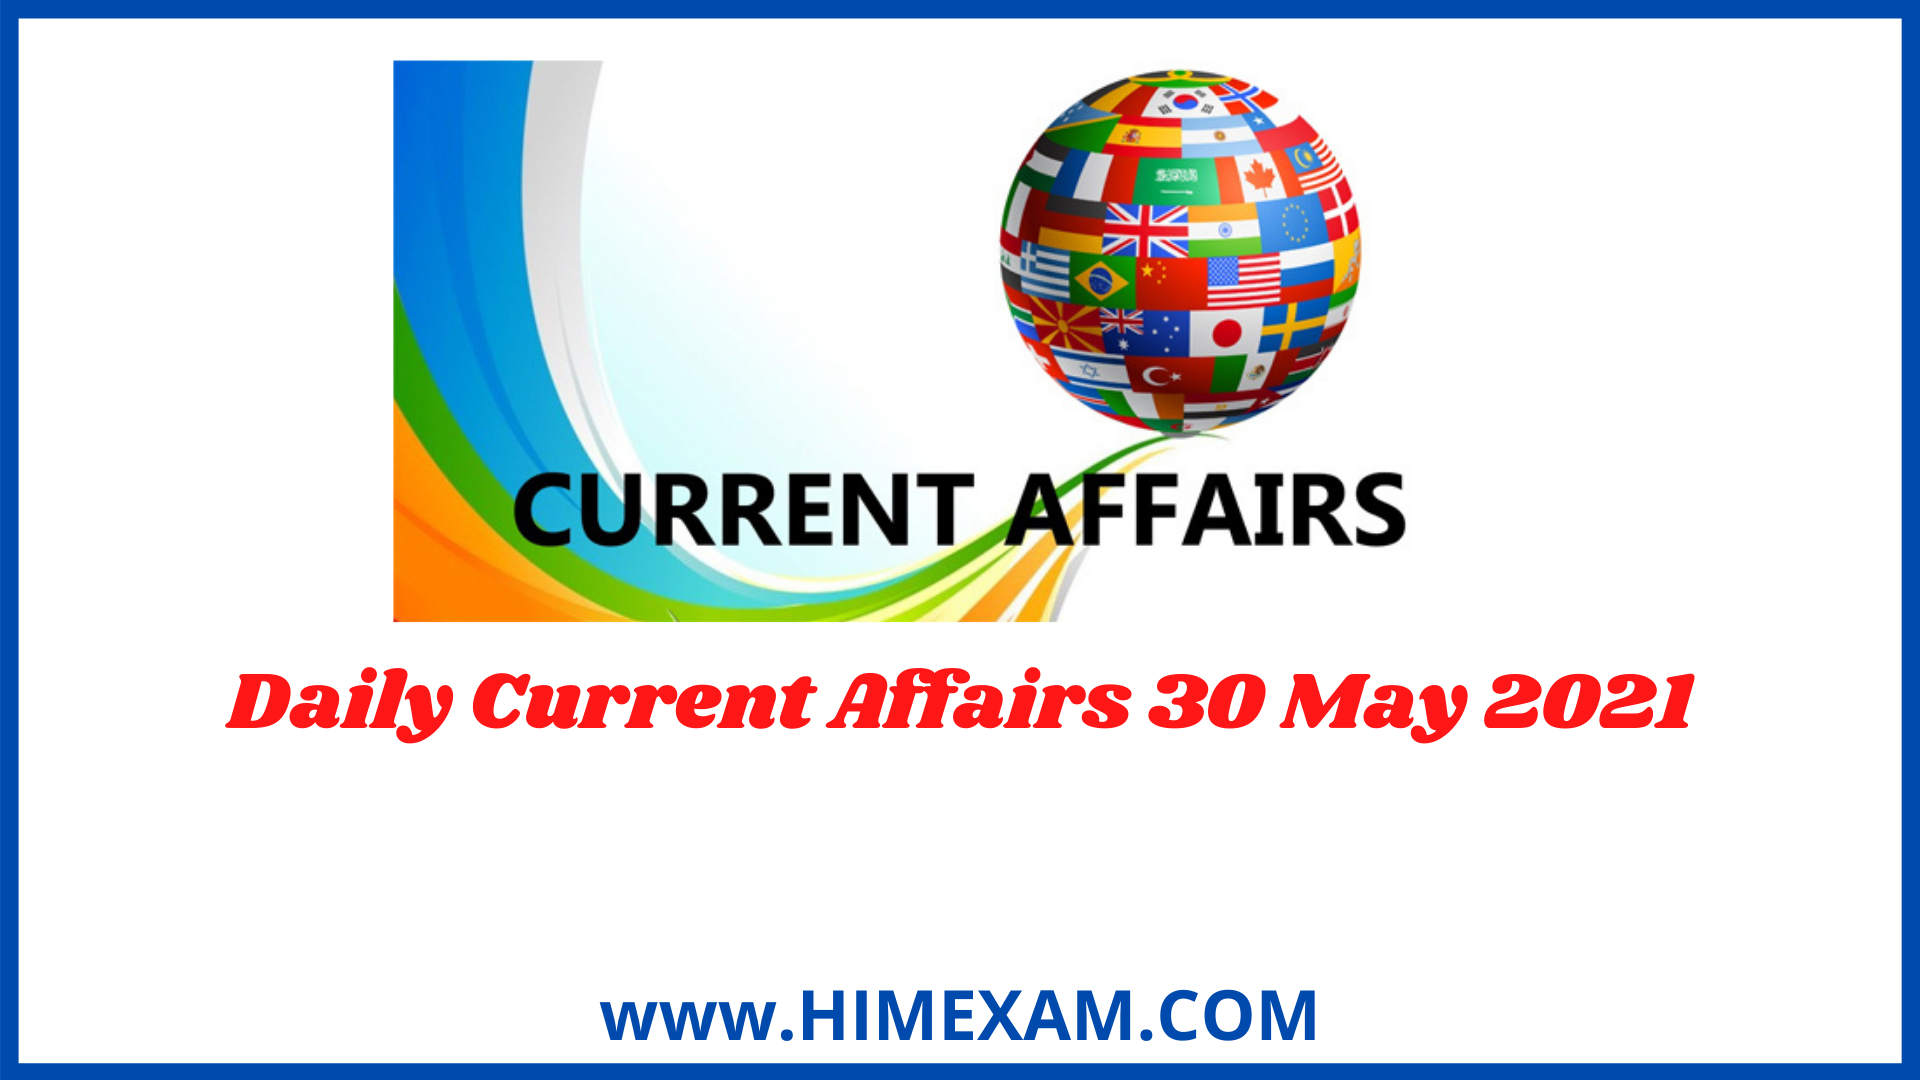 Daily Current Affairs 30 May 2021